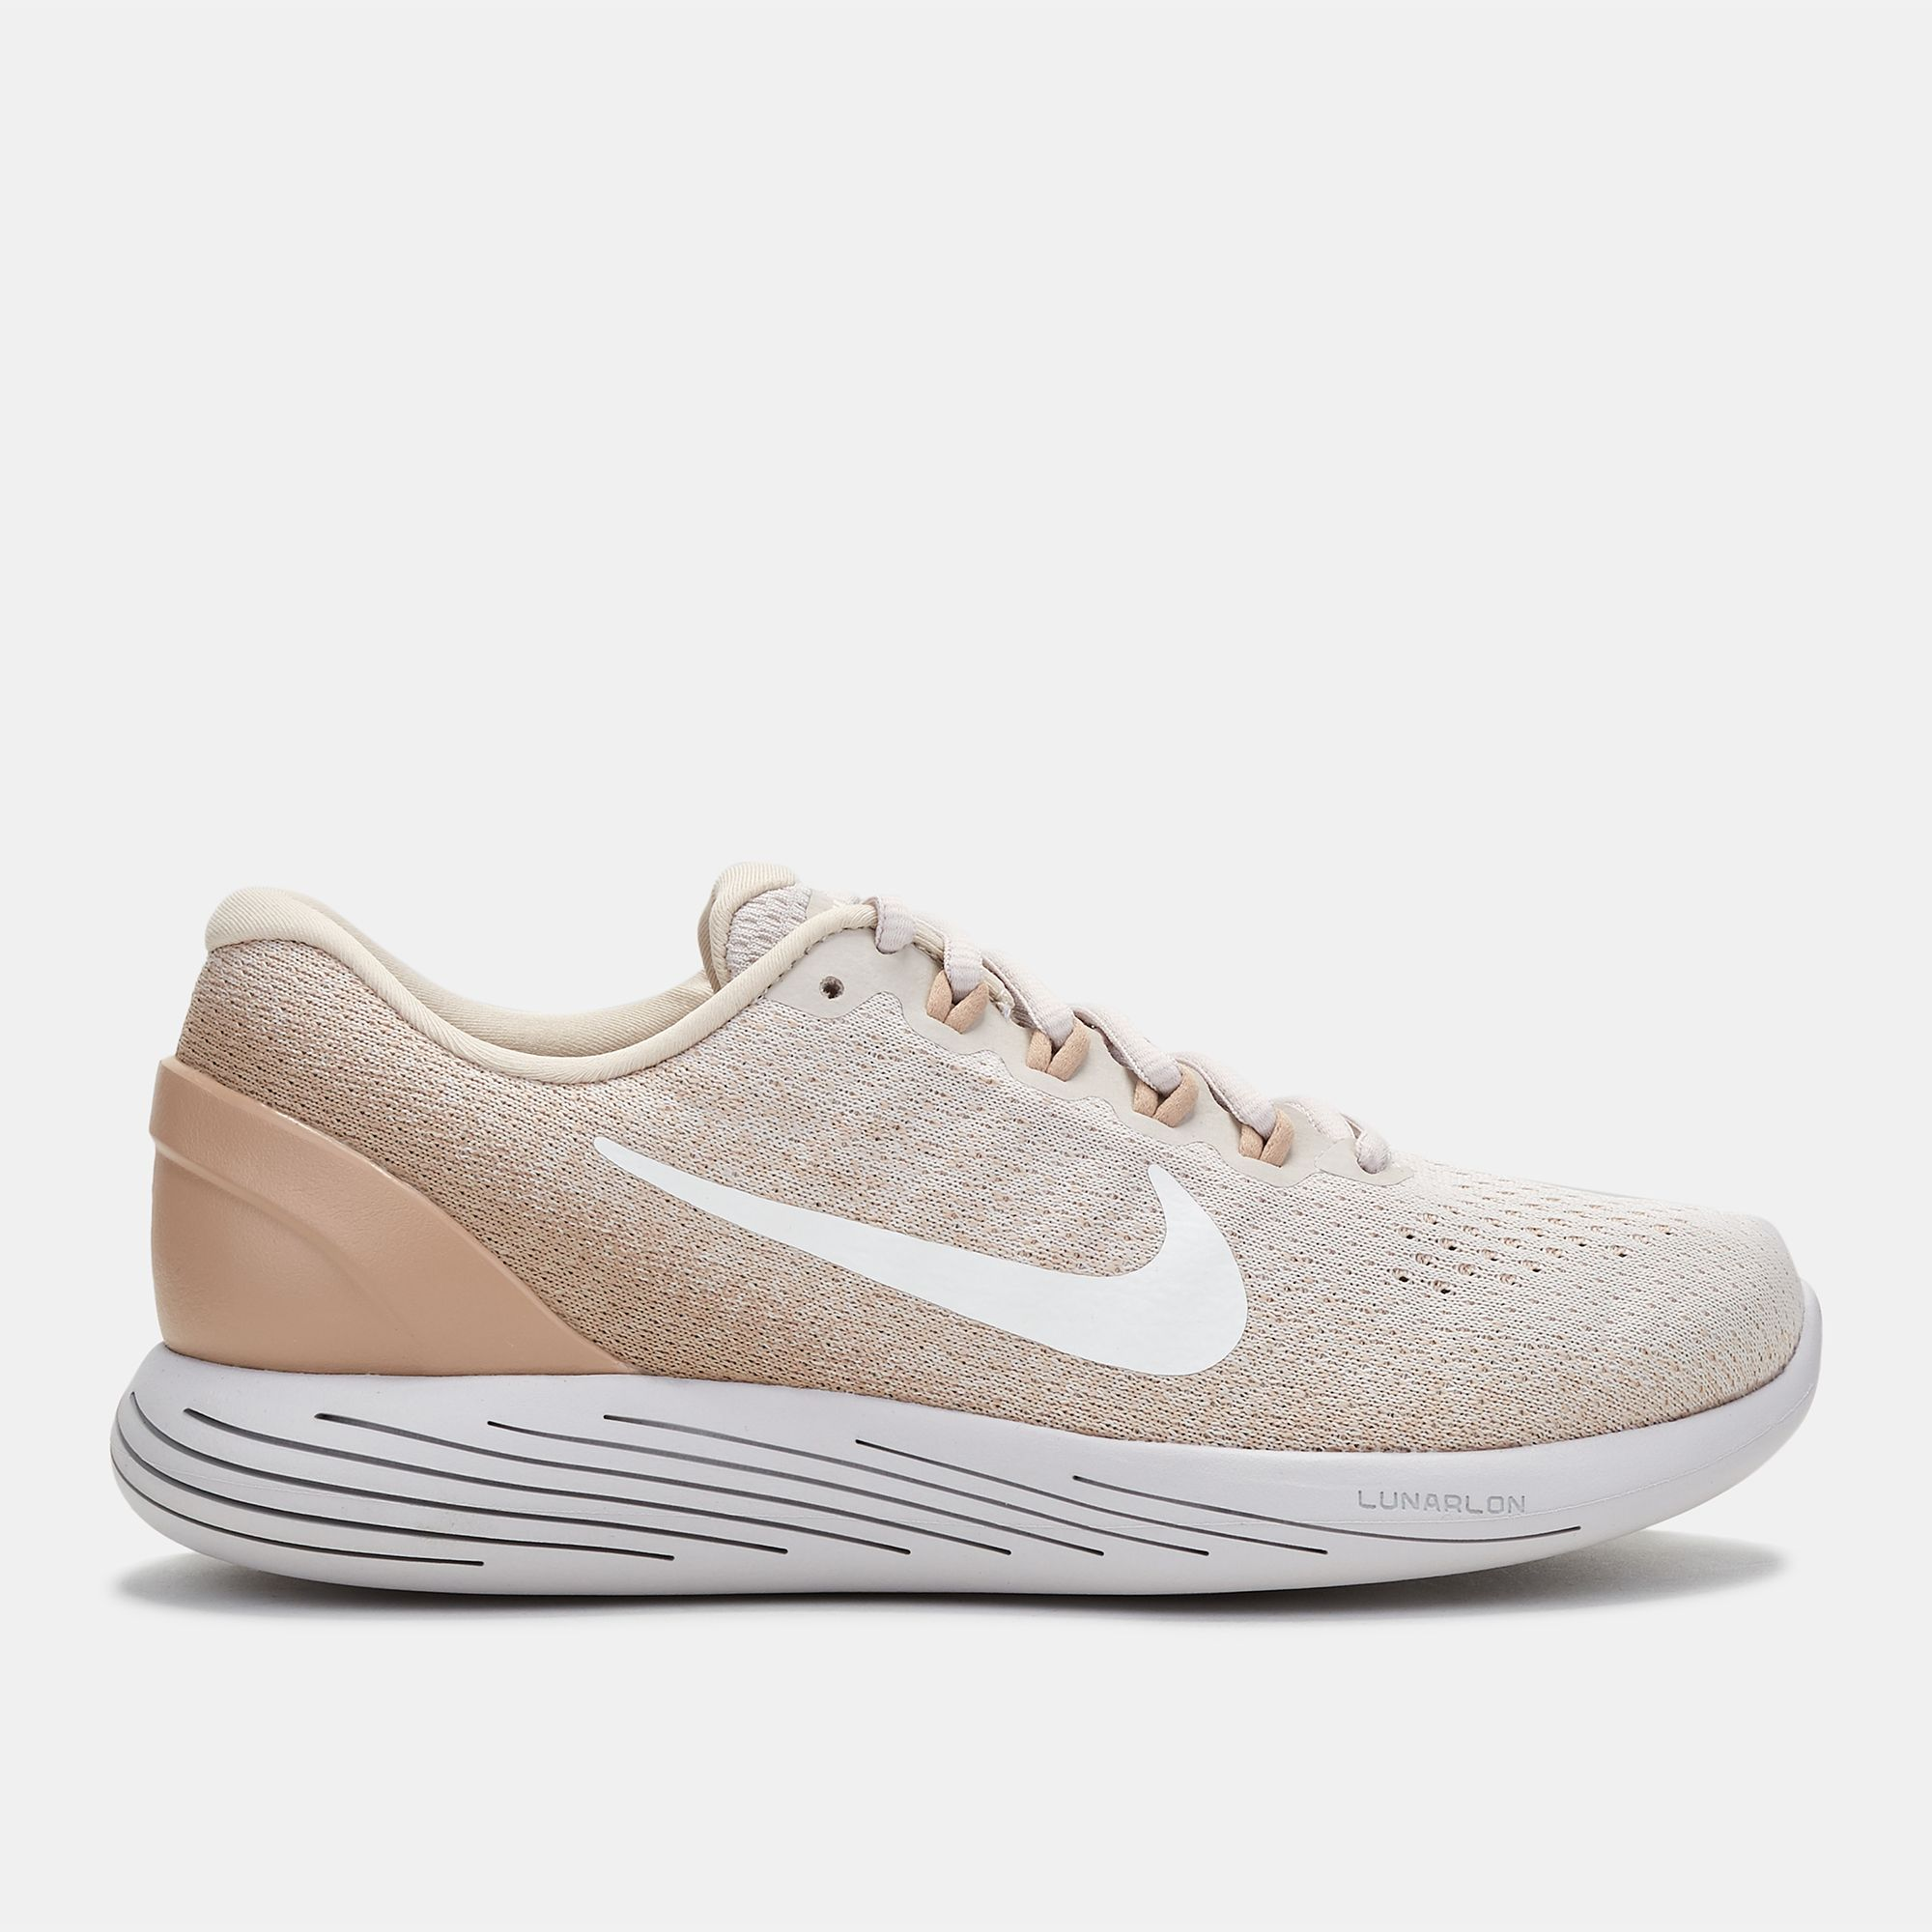 4ea99fa93d4 ... where to buy nike lunarglide 9 running shoe 676a4 09c3a ...